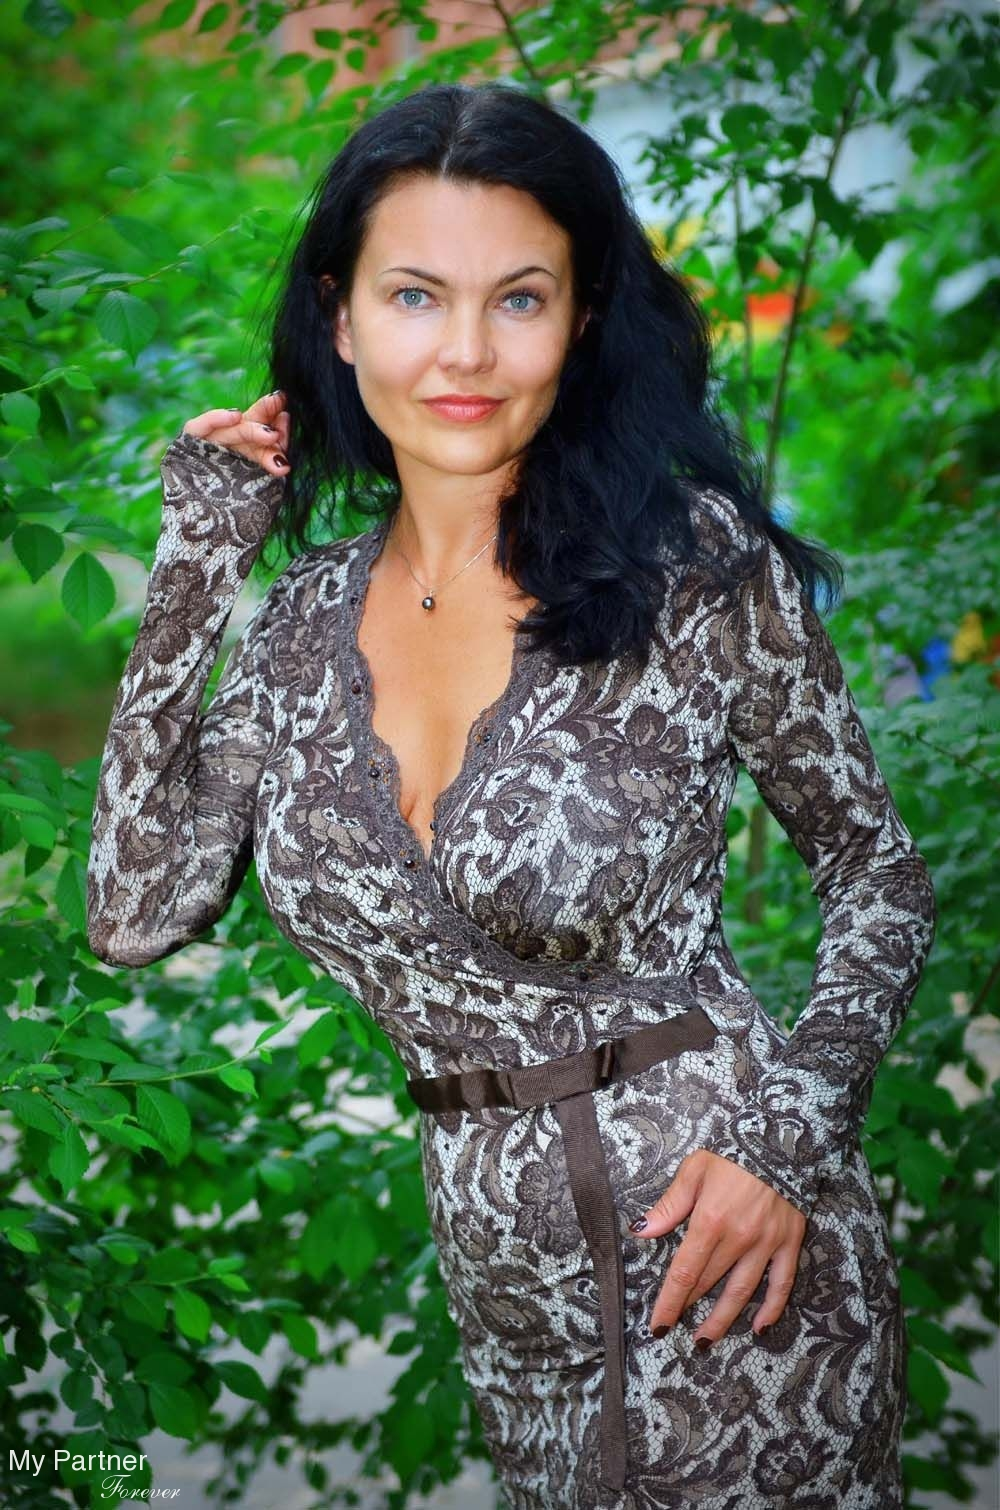 Datingsite to Meet Stunning Ukrainian Girl Olga from Kharkov, Ukraine